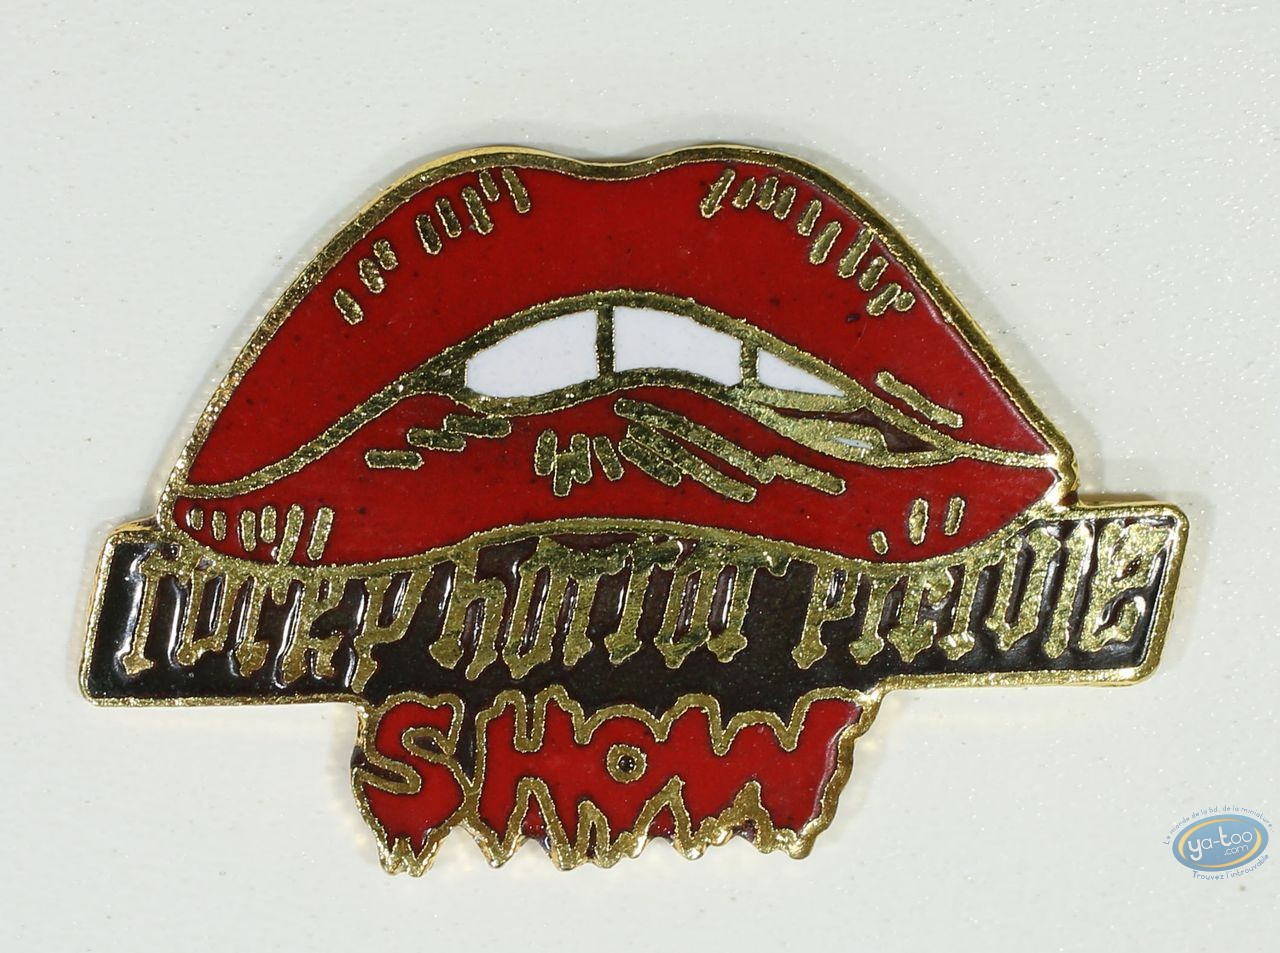 Pin's, Rocky Horror Picture